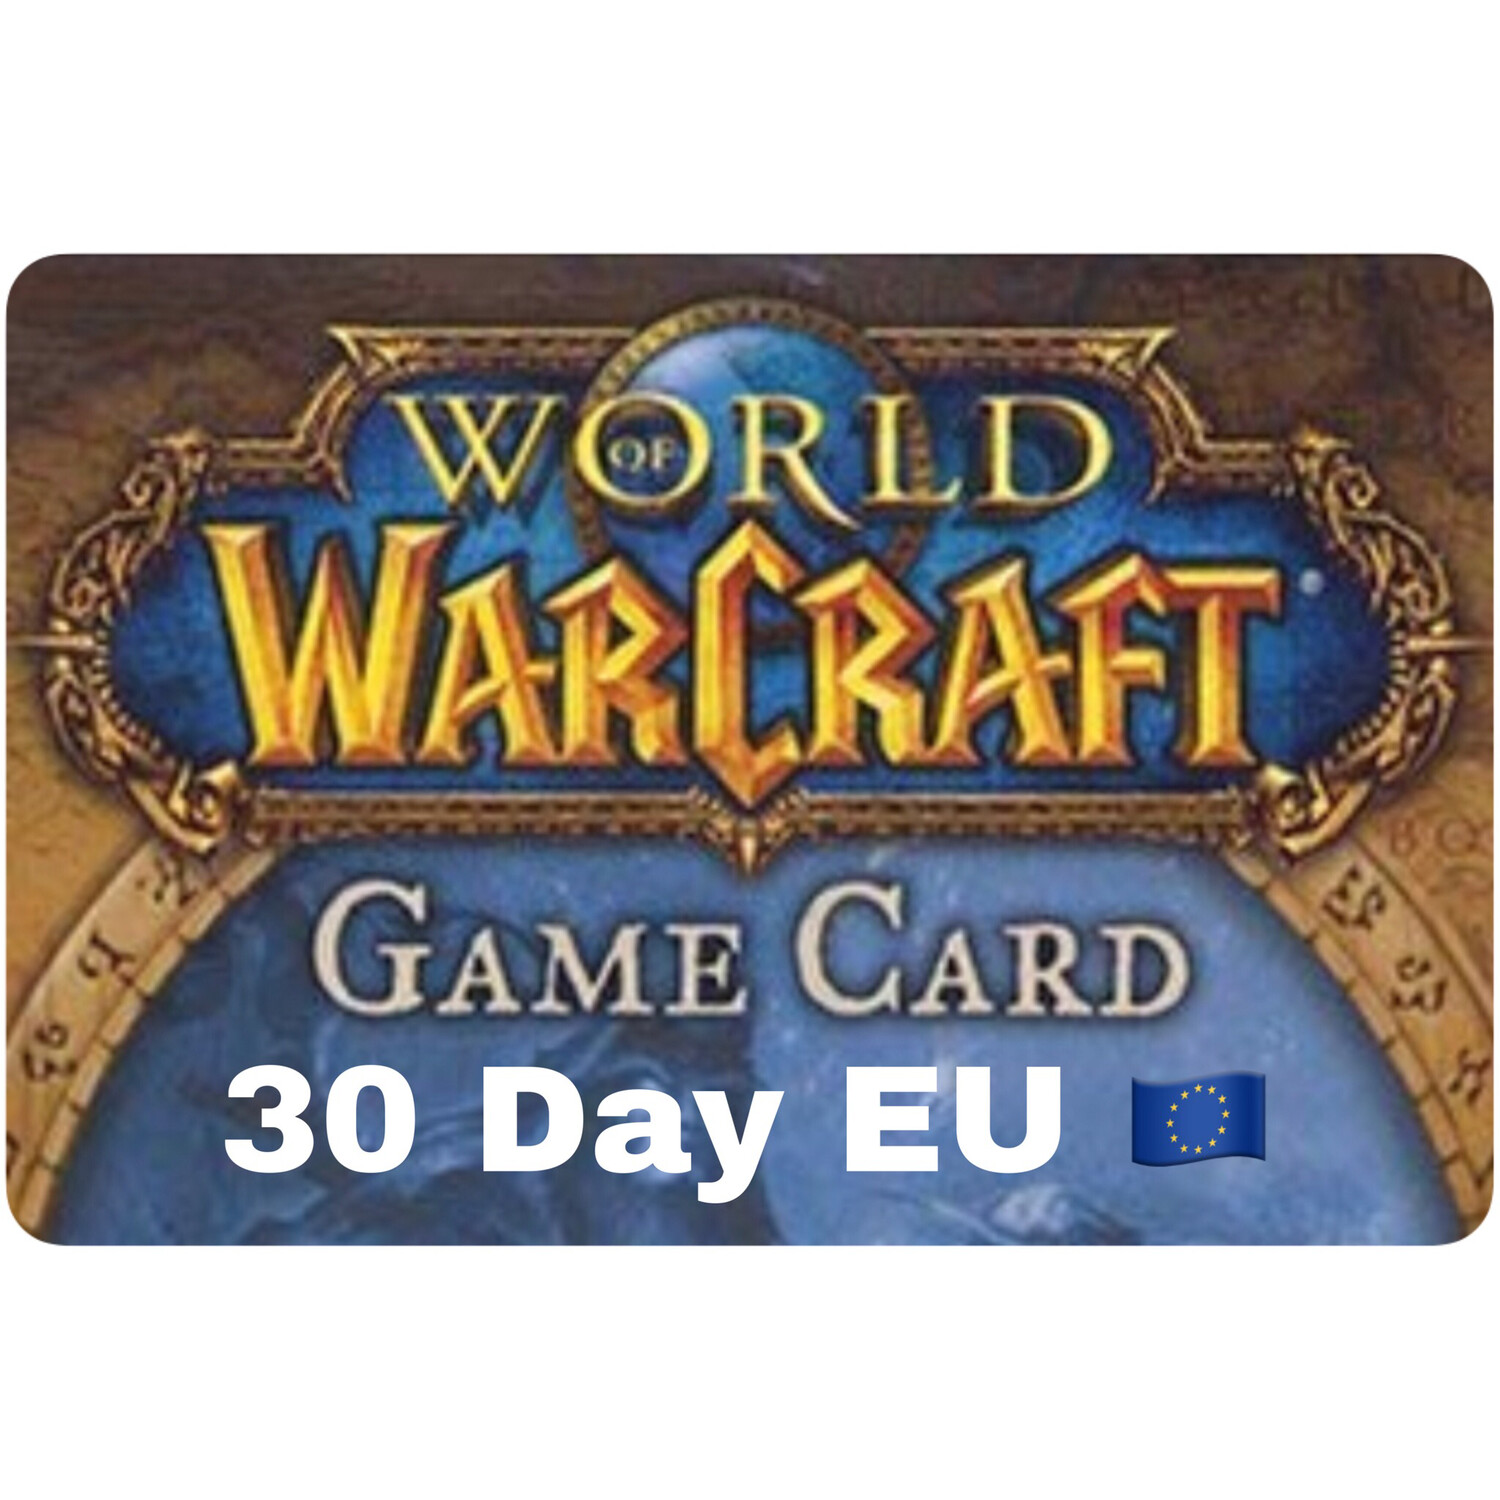 World of Warcraft 30 Day EU Game Card